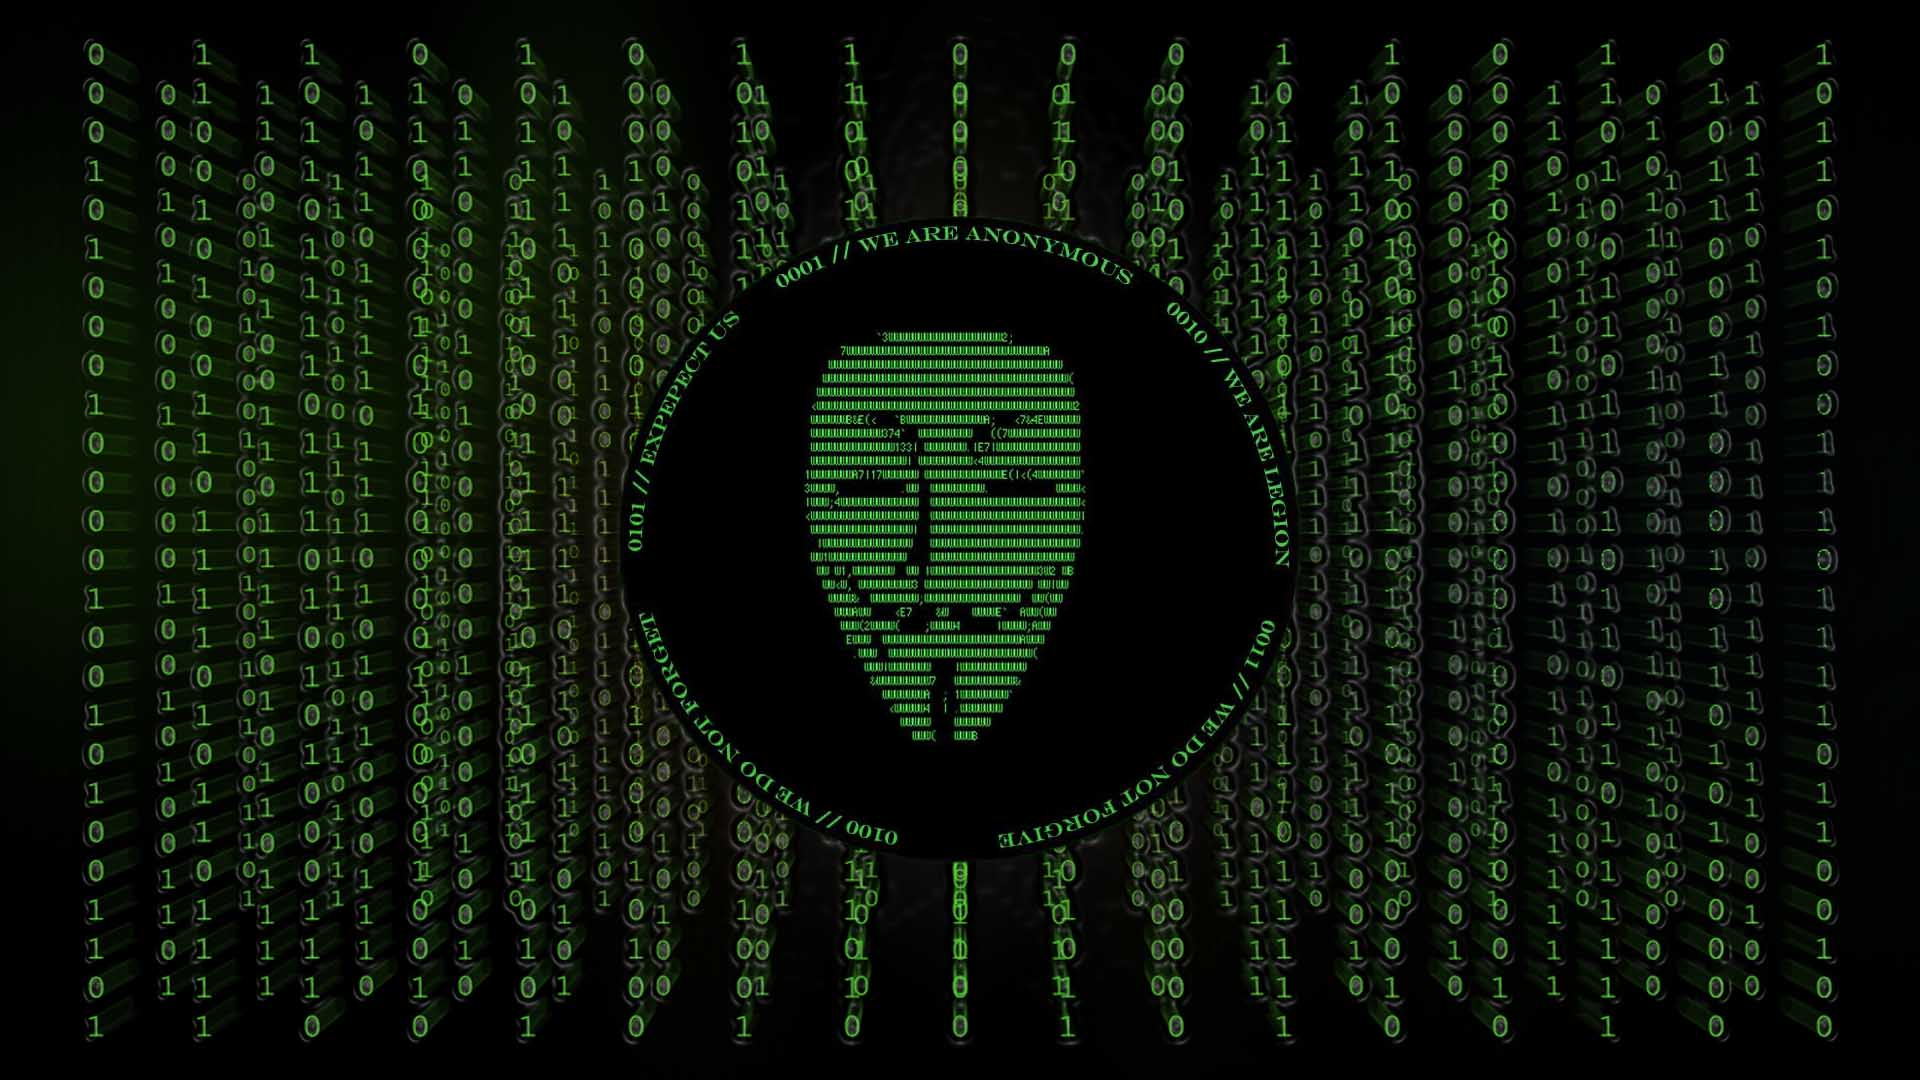 hackers wallpaper wallpapers de - photo #34